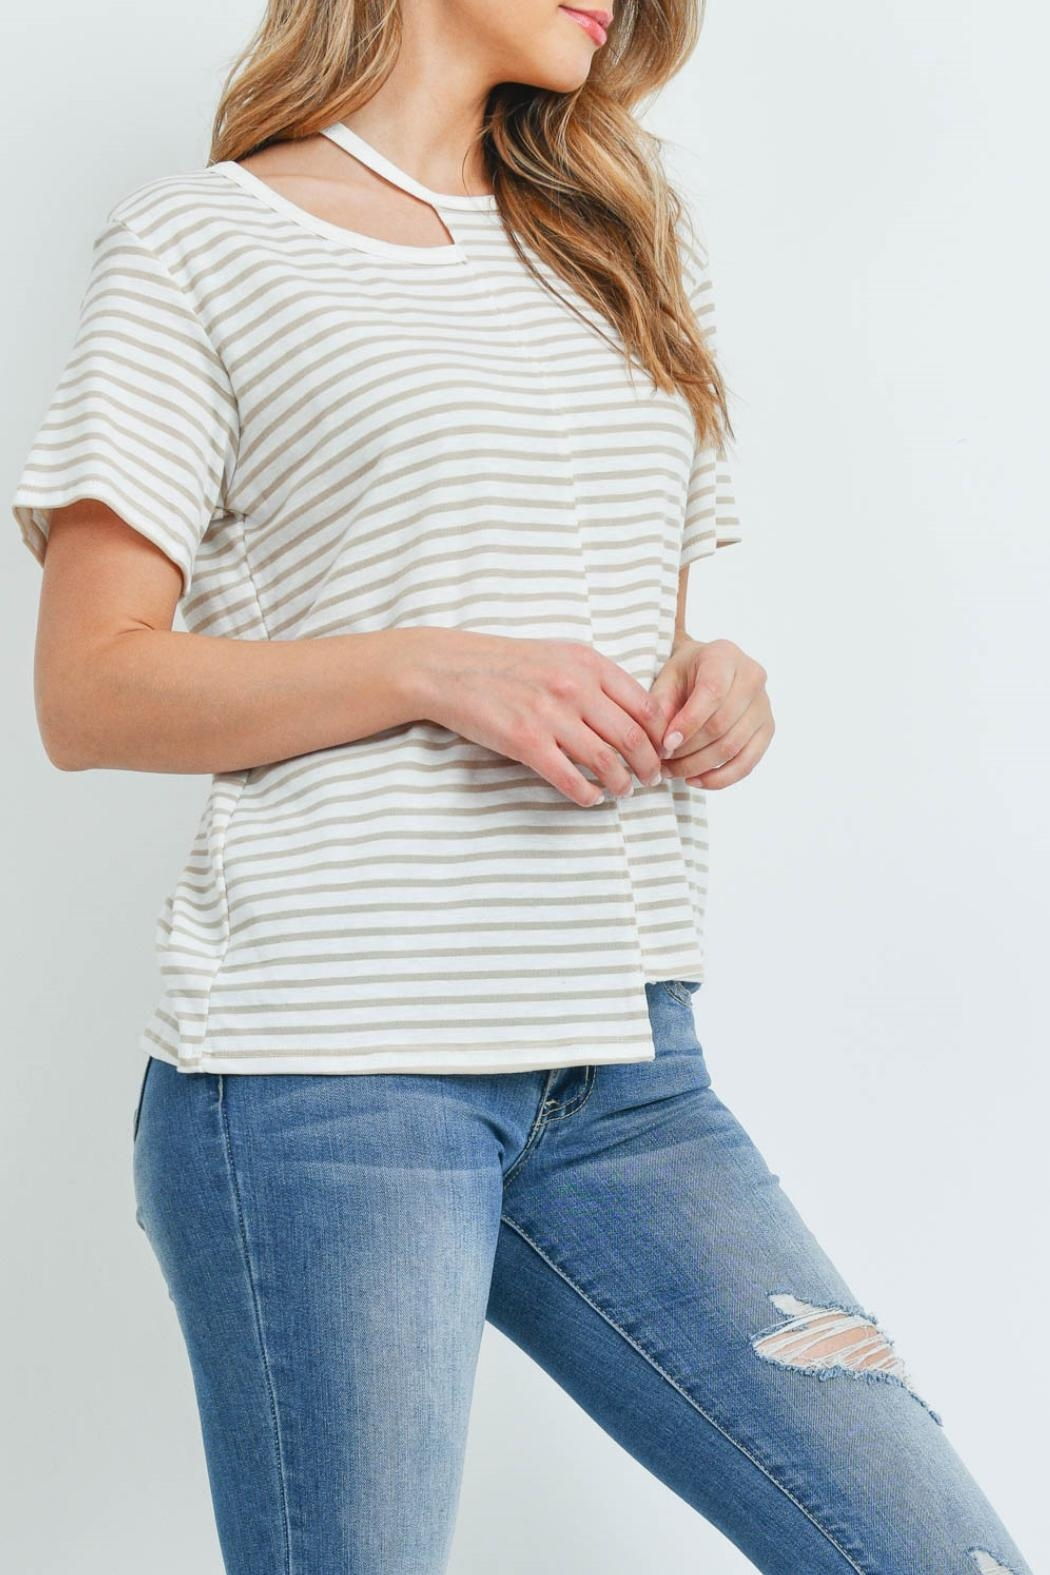 Jolie Ivory Taupe-Striped Top - Front Full Image